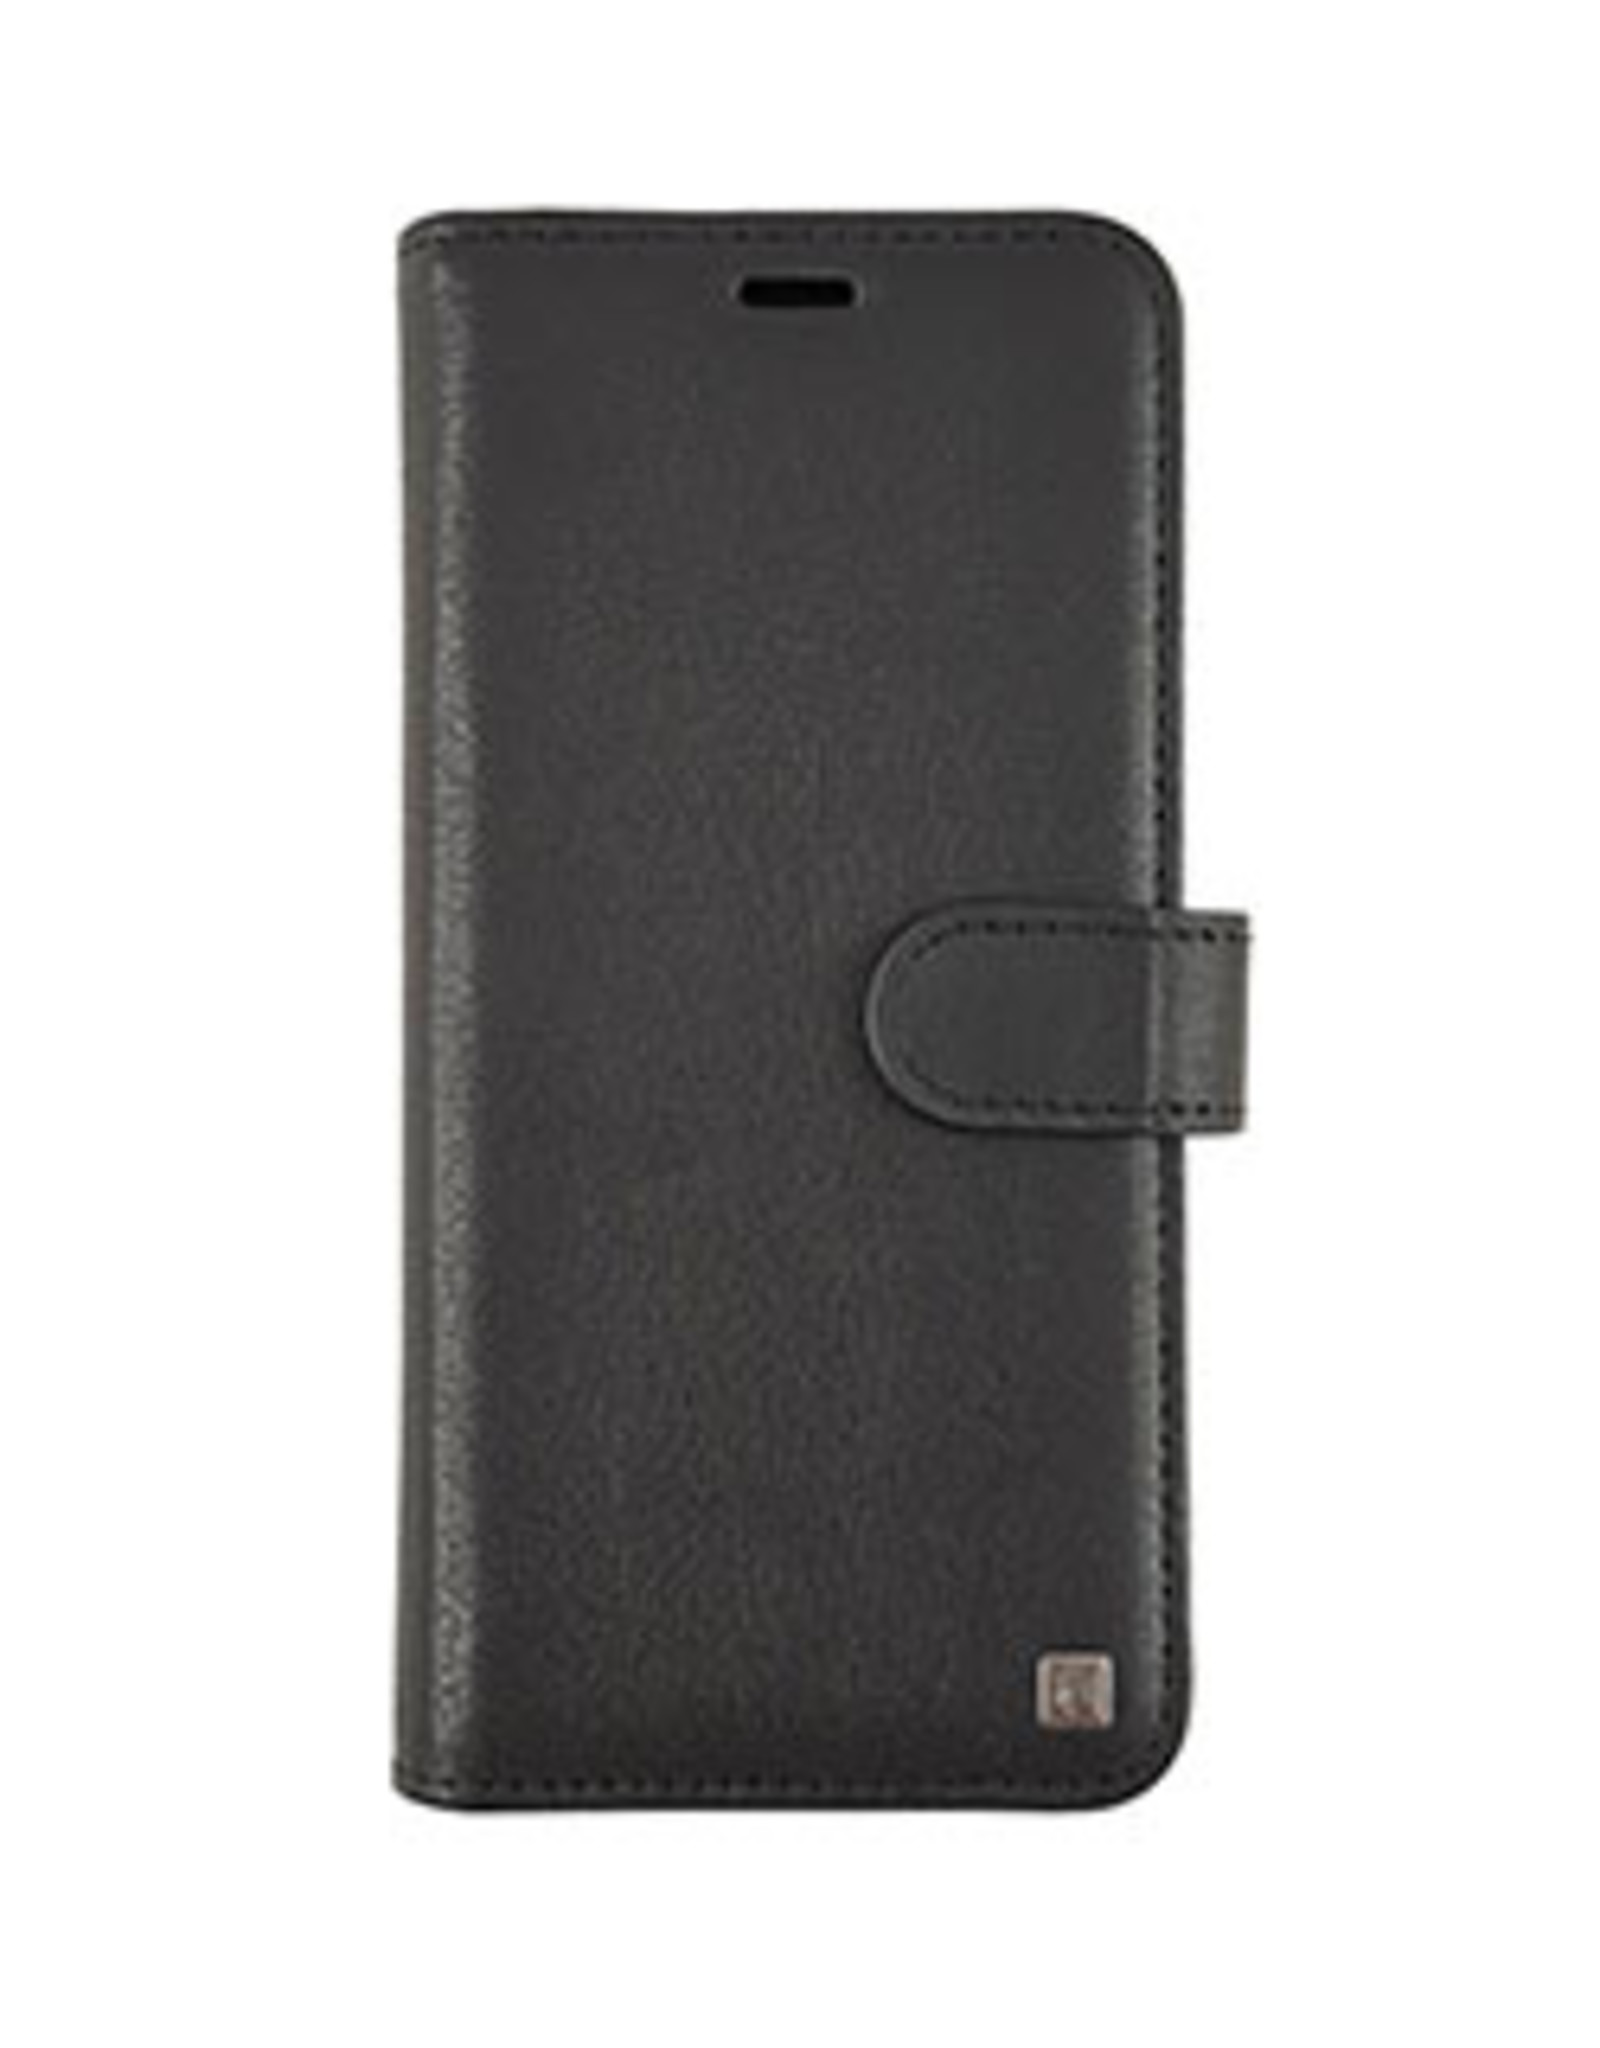 Samsung Galaxy S9 Uunique Black Genuine Leather 2-in-1 Detachable Folio Case 15-04355